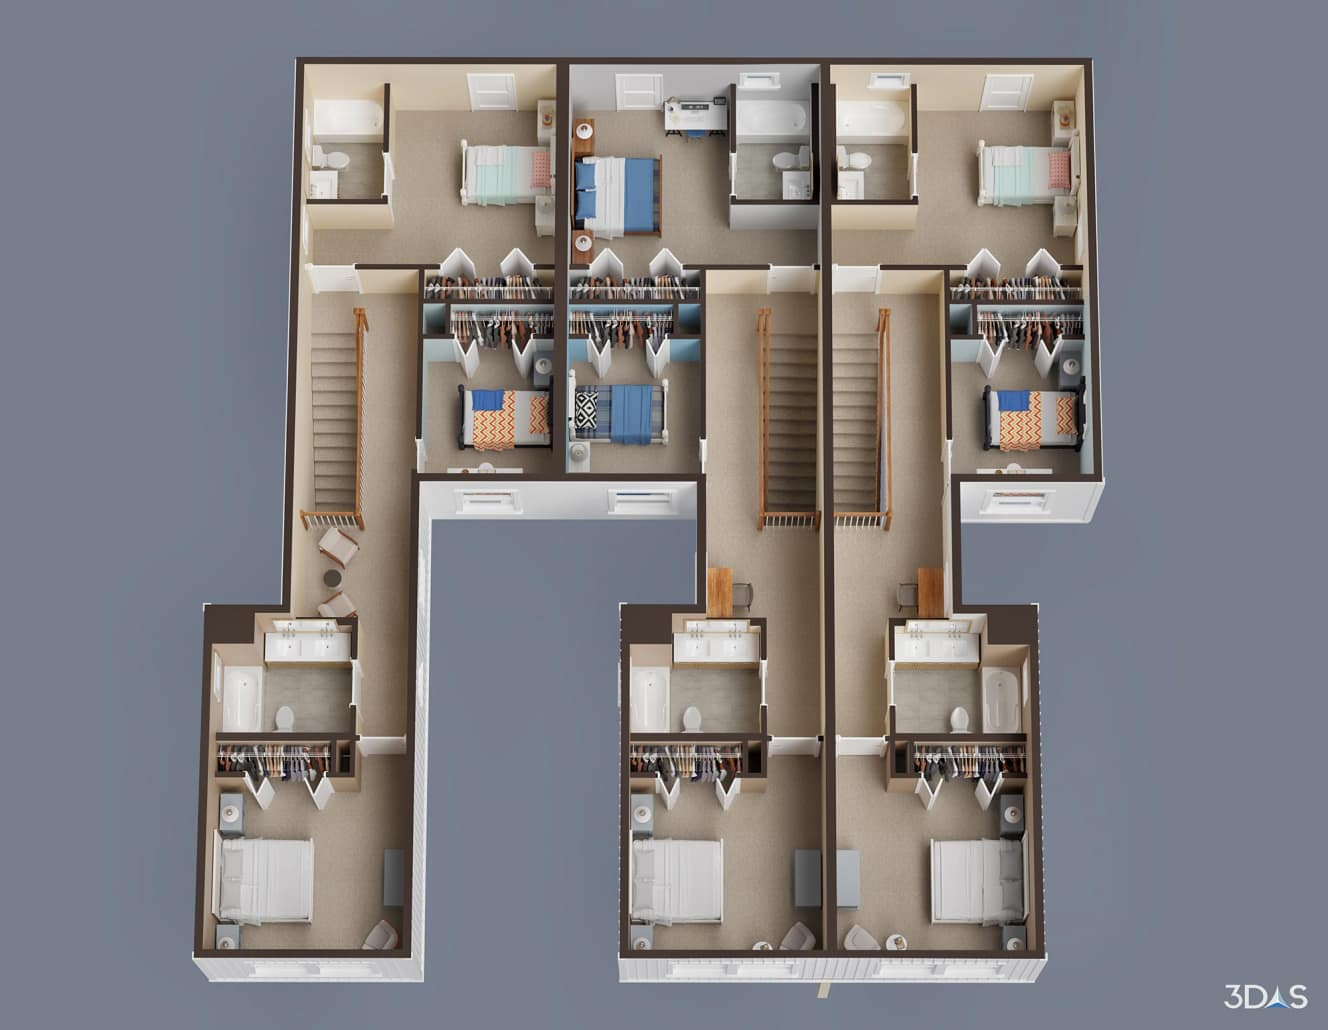 Affordable home 2nd floor 3D rendering. Habitat for Humanity Collier's Kaicasa.